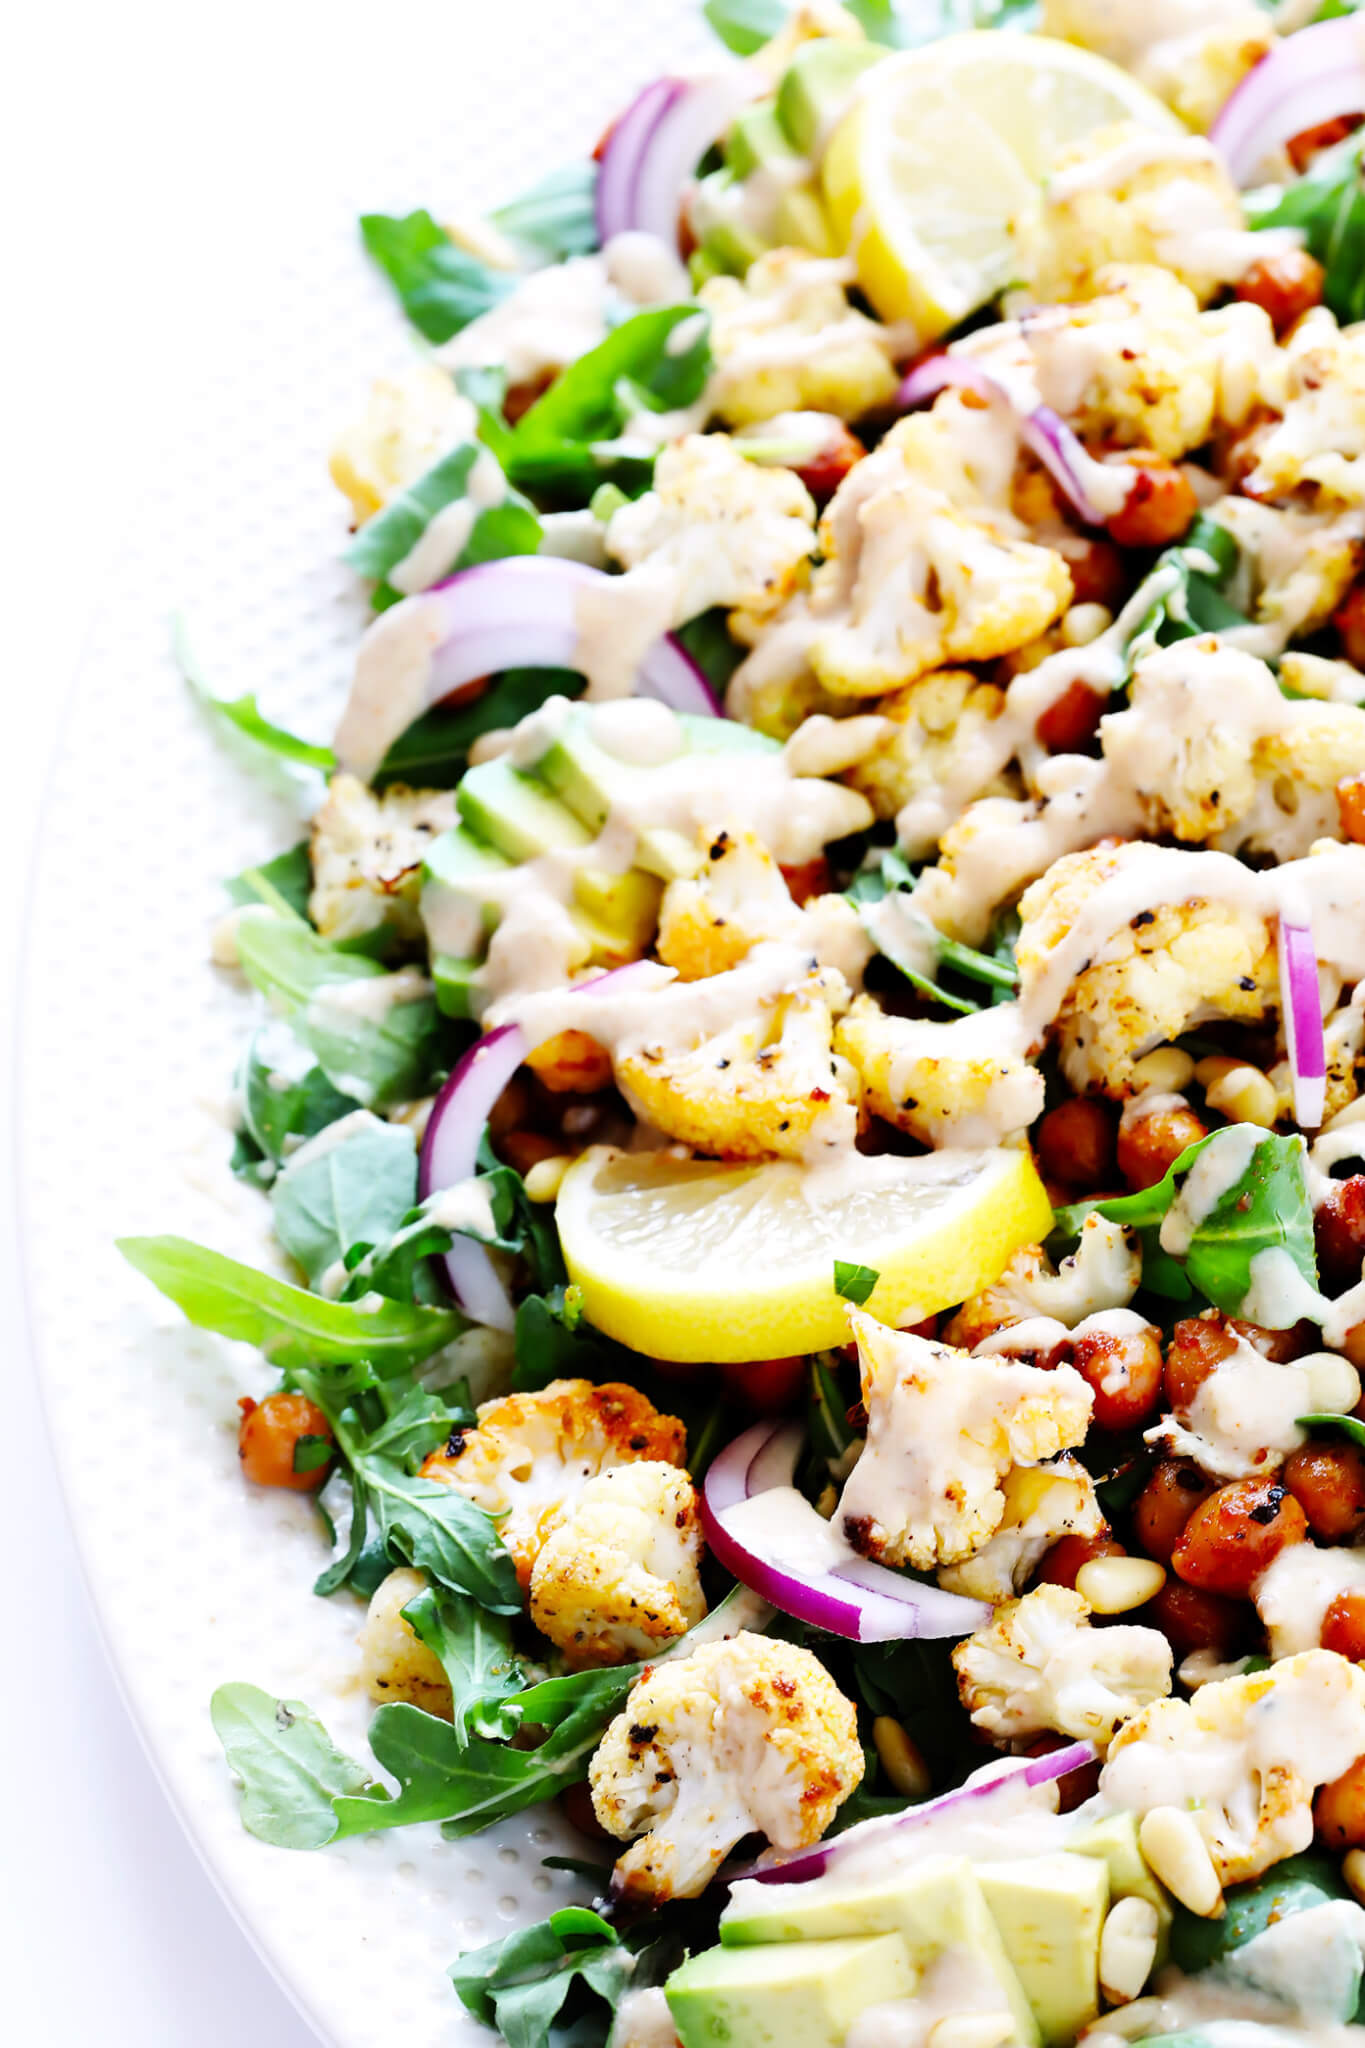 The BEST Roasted Cauliflower Salad with Chickpeas, Arugula and Tahini Dressing